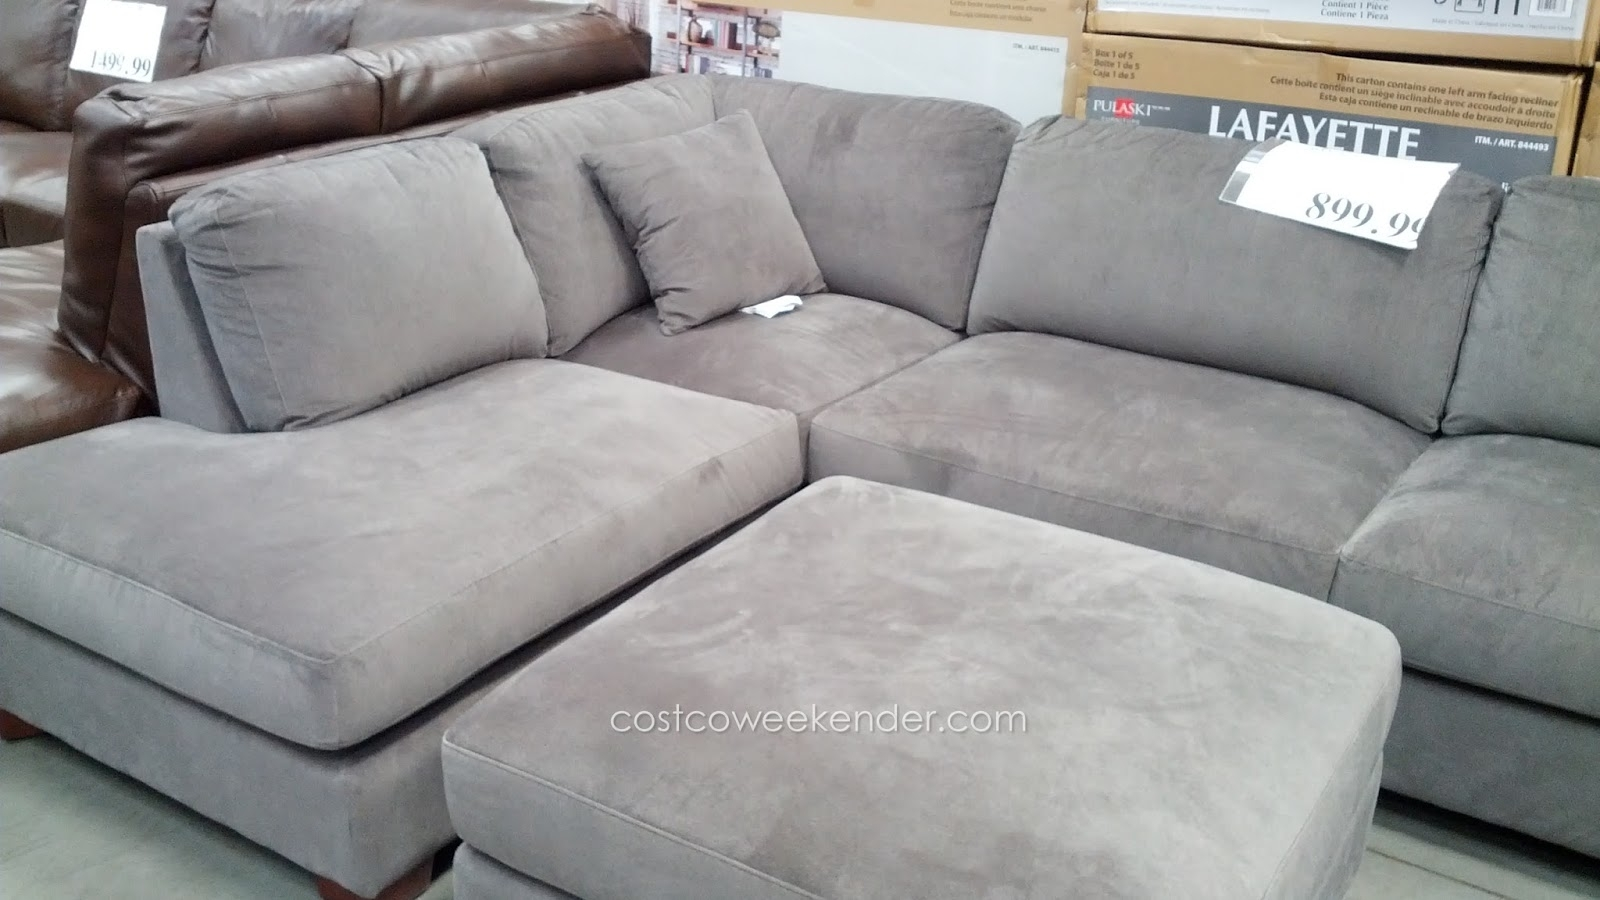 Sectional Sofa Design: Lovely Sectional Sofas Costco Ashley Throughout Sectional Sofas At Costco (View 12 of 15)